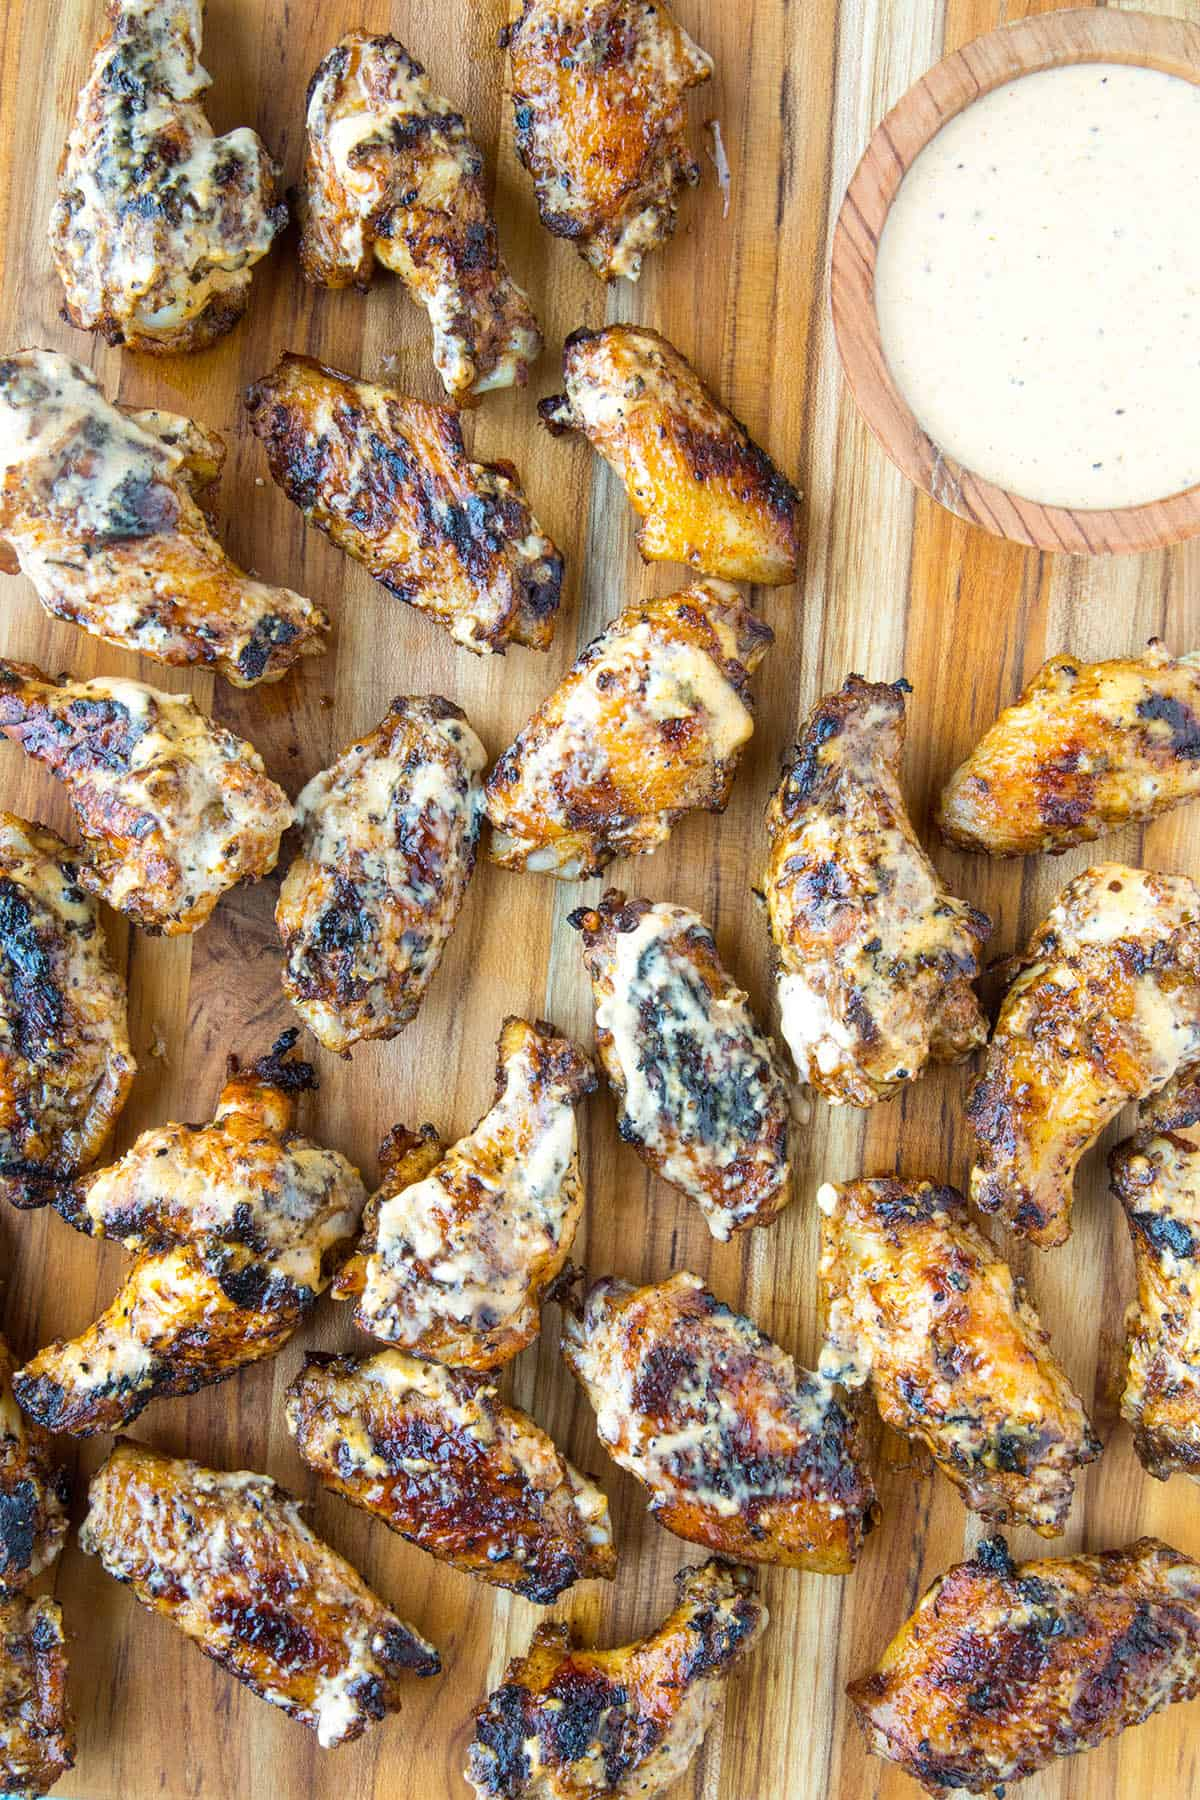 Grilled Chicken Wings with Alabama White BBQ Sauce, ready to serve